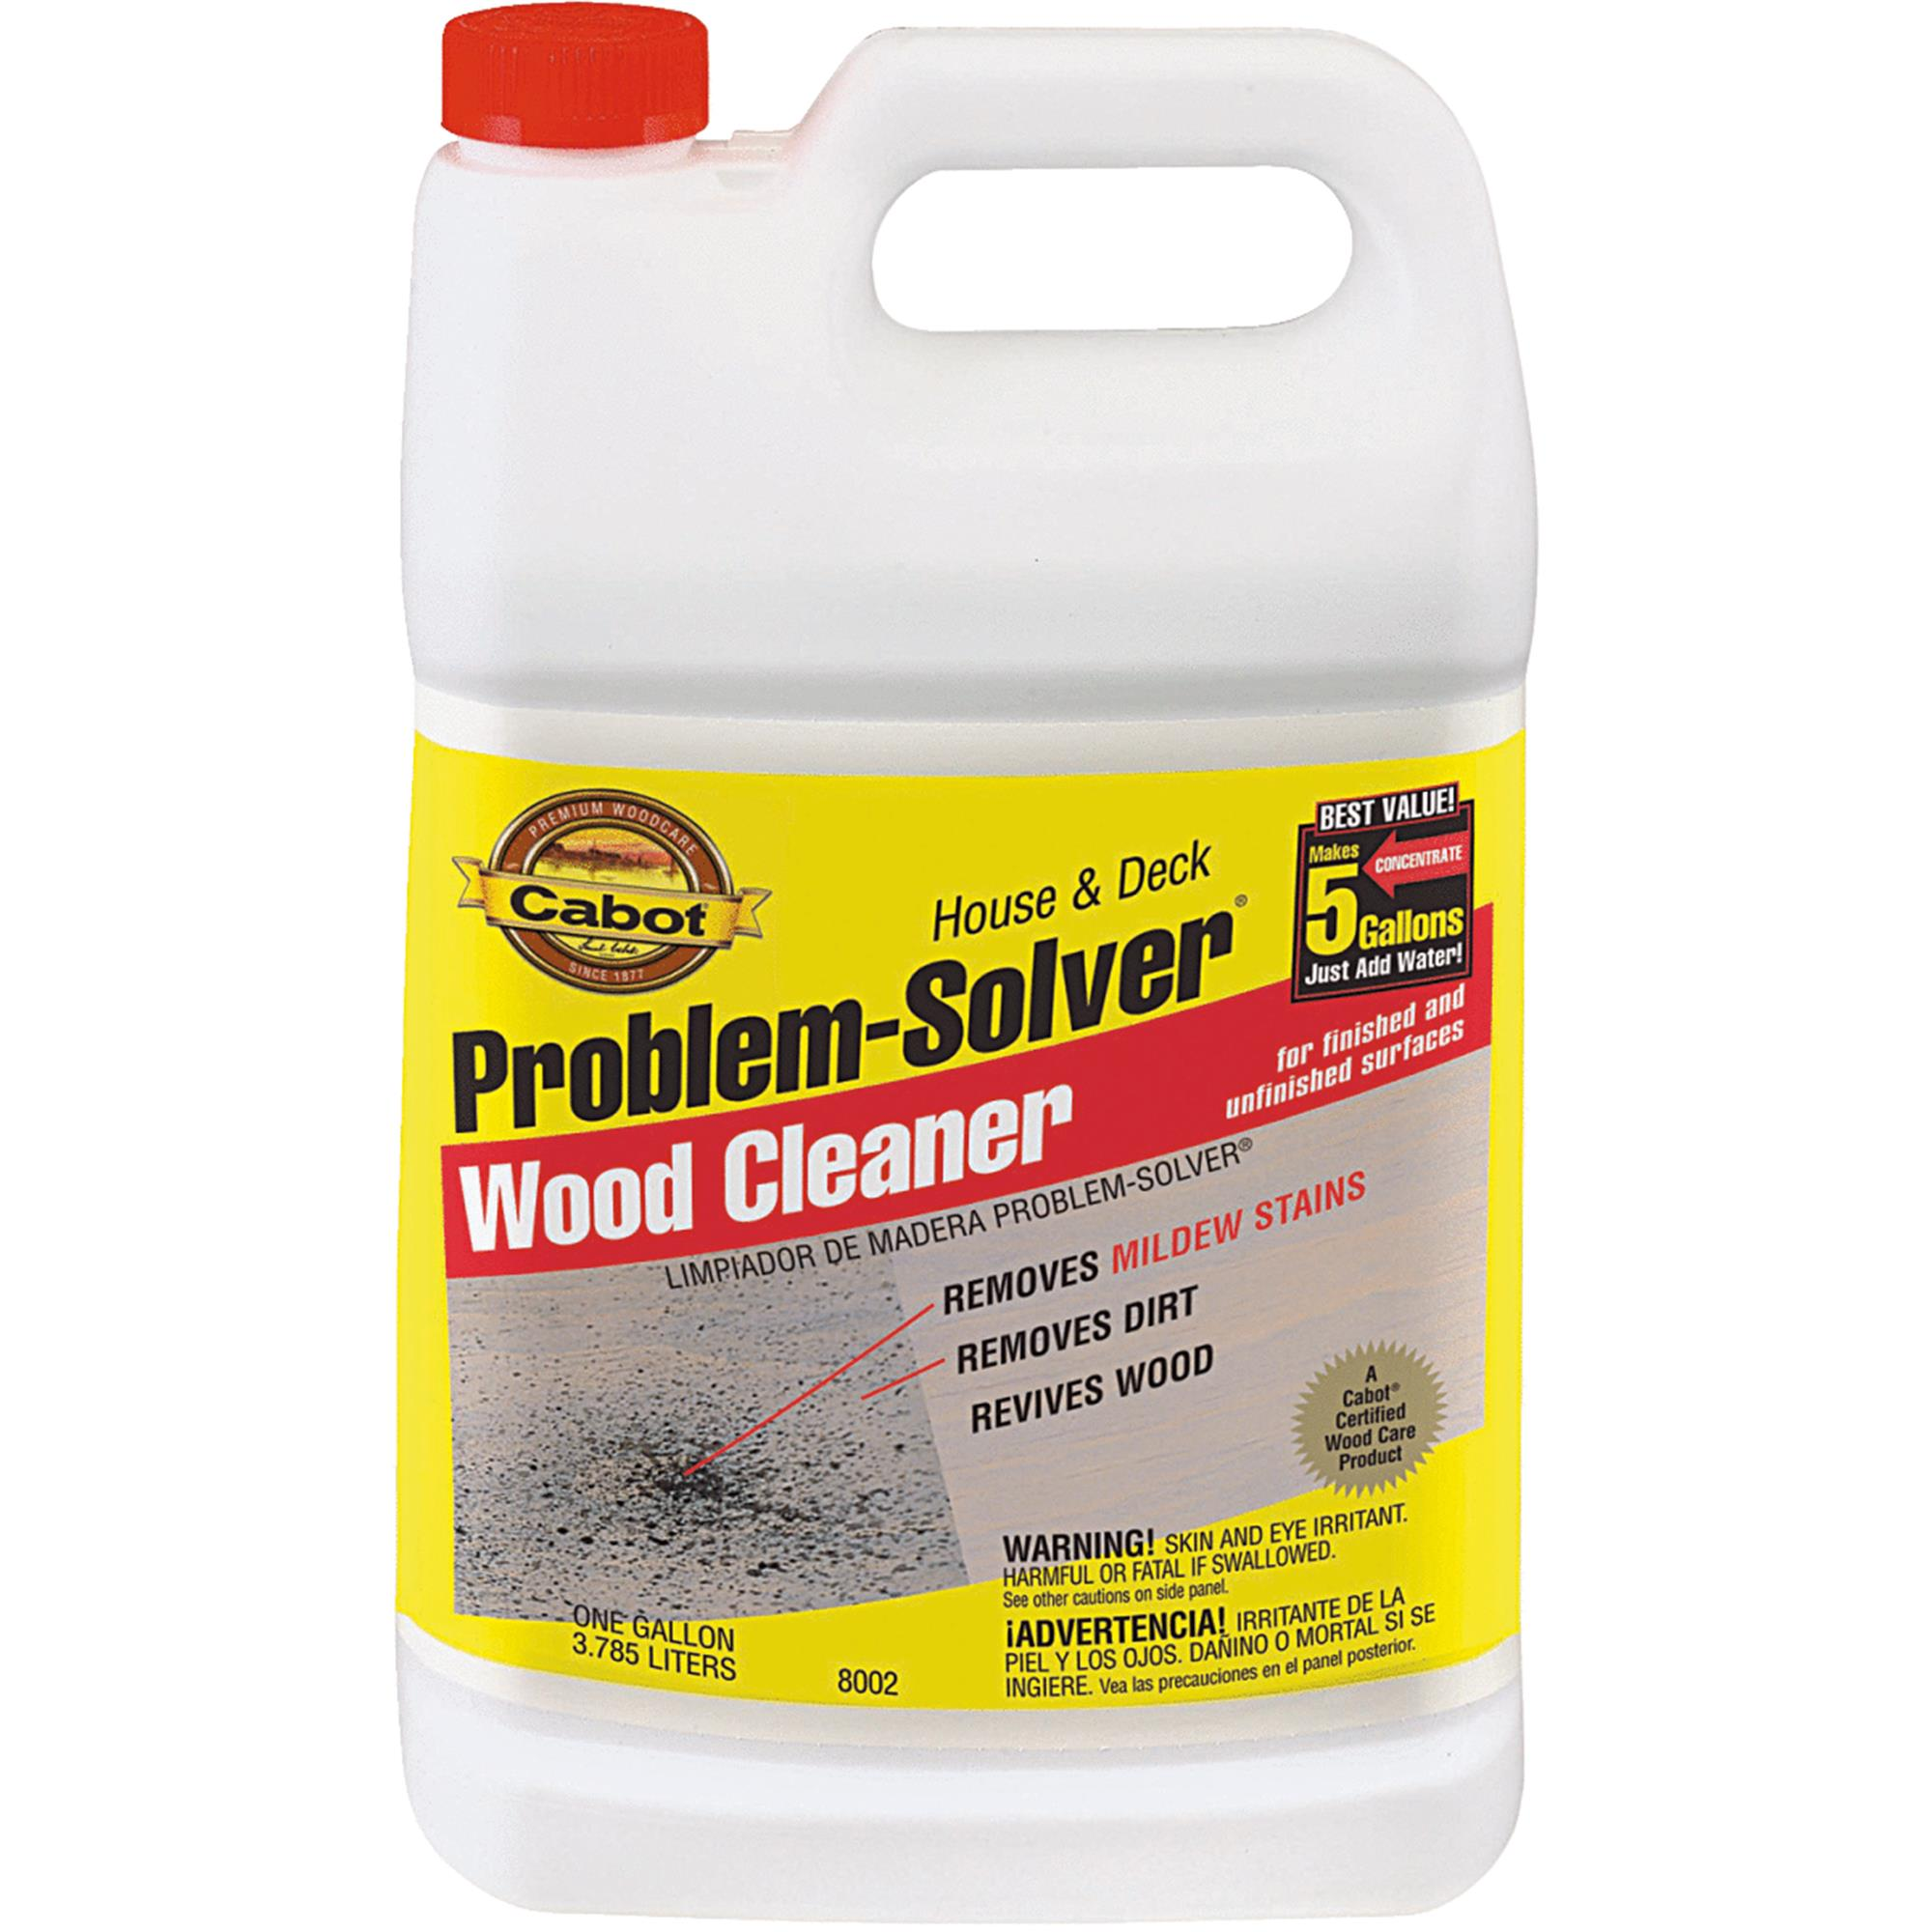 Cabot Problem-Solver House & Deck Wood Cleaner